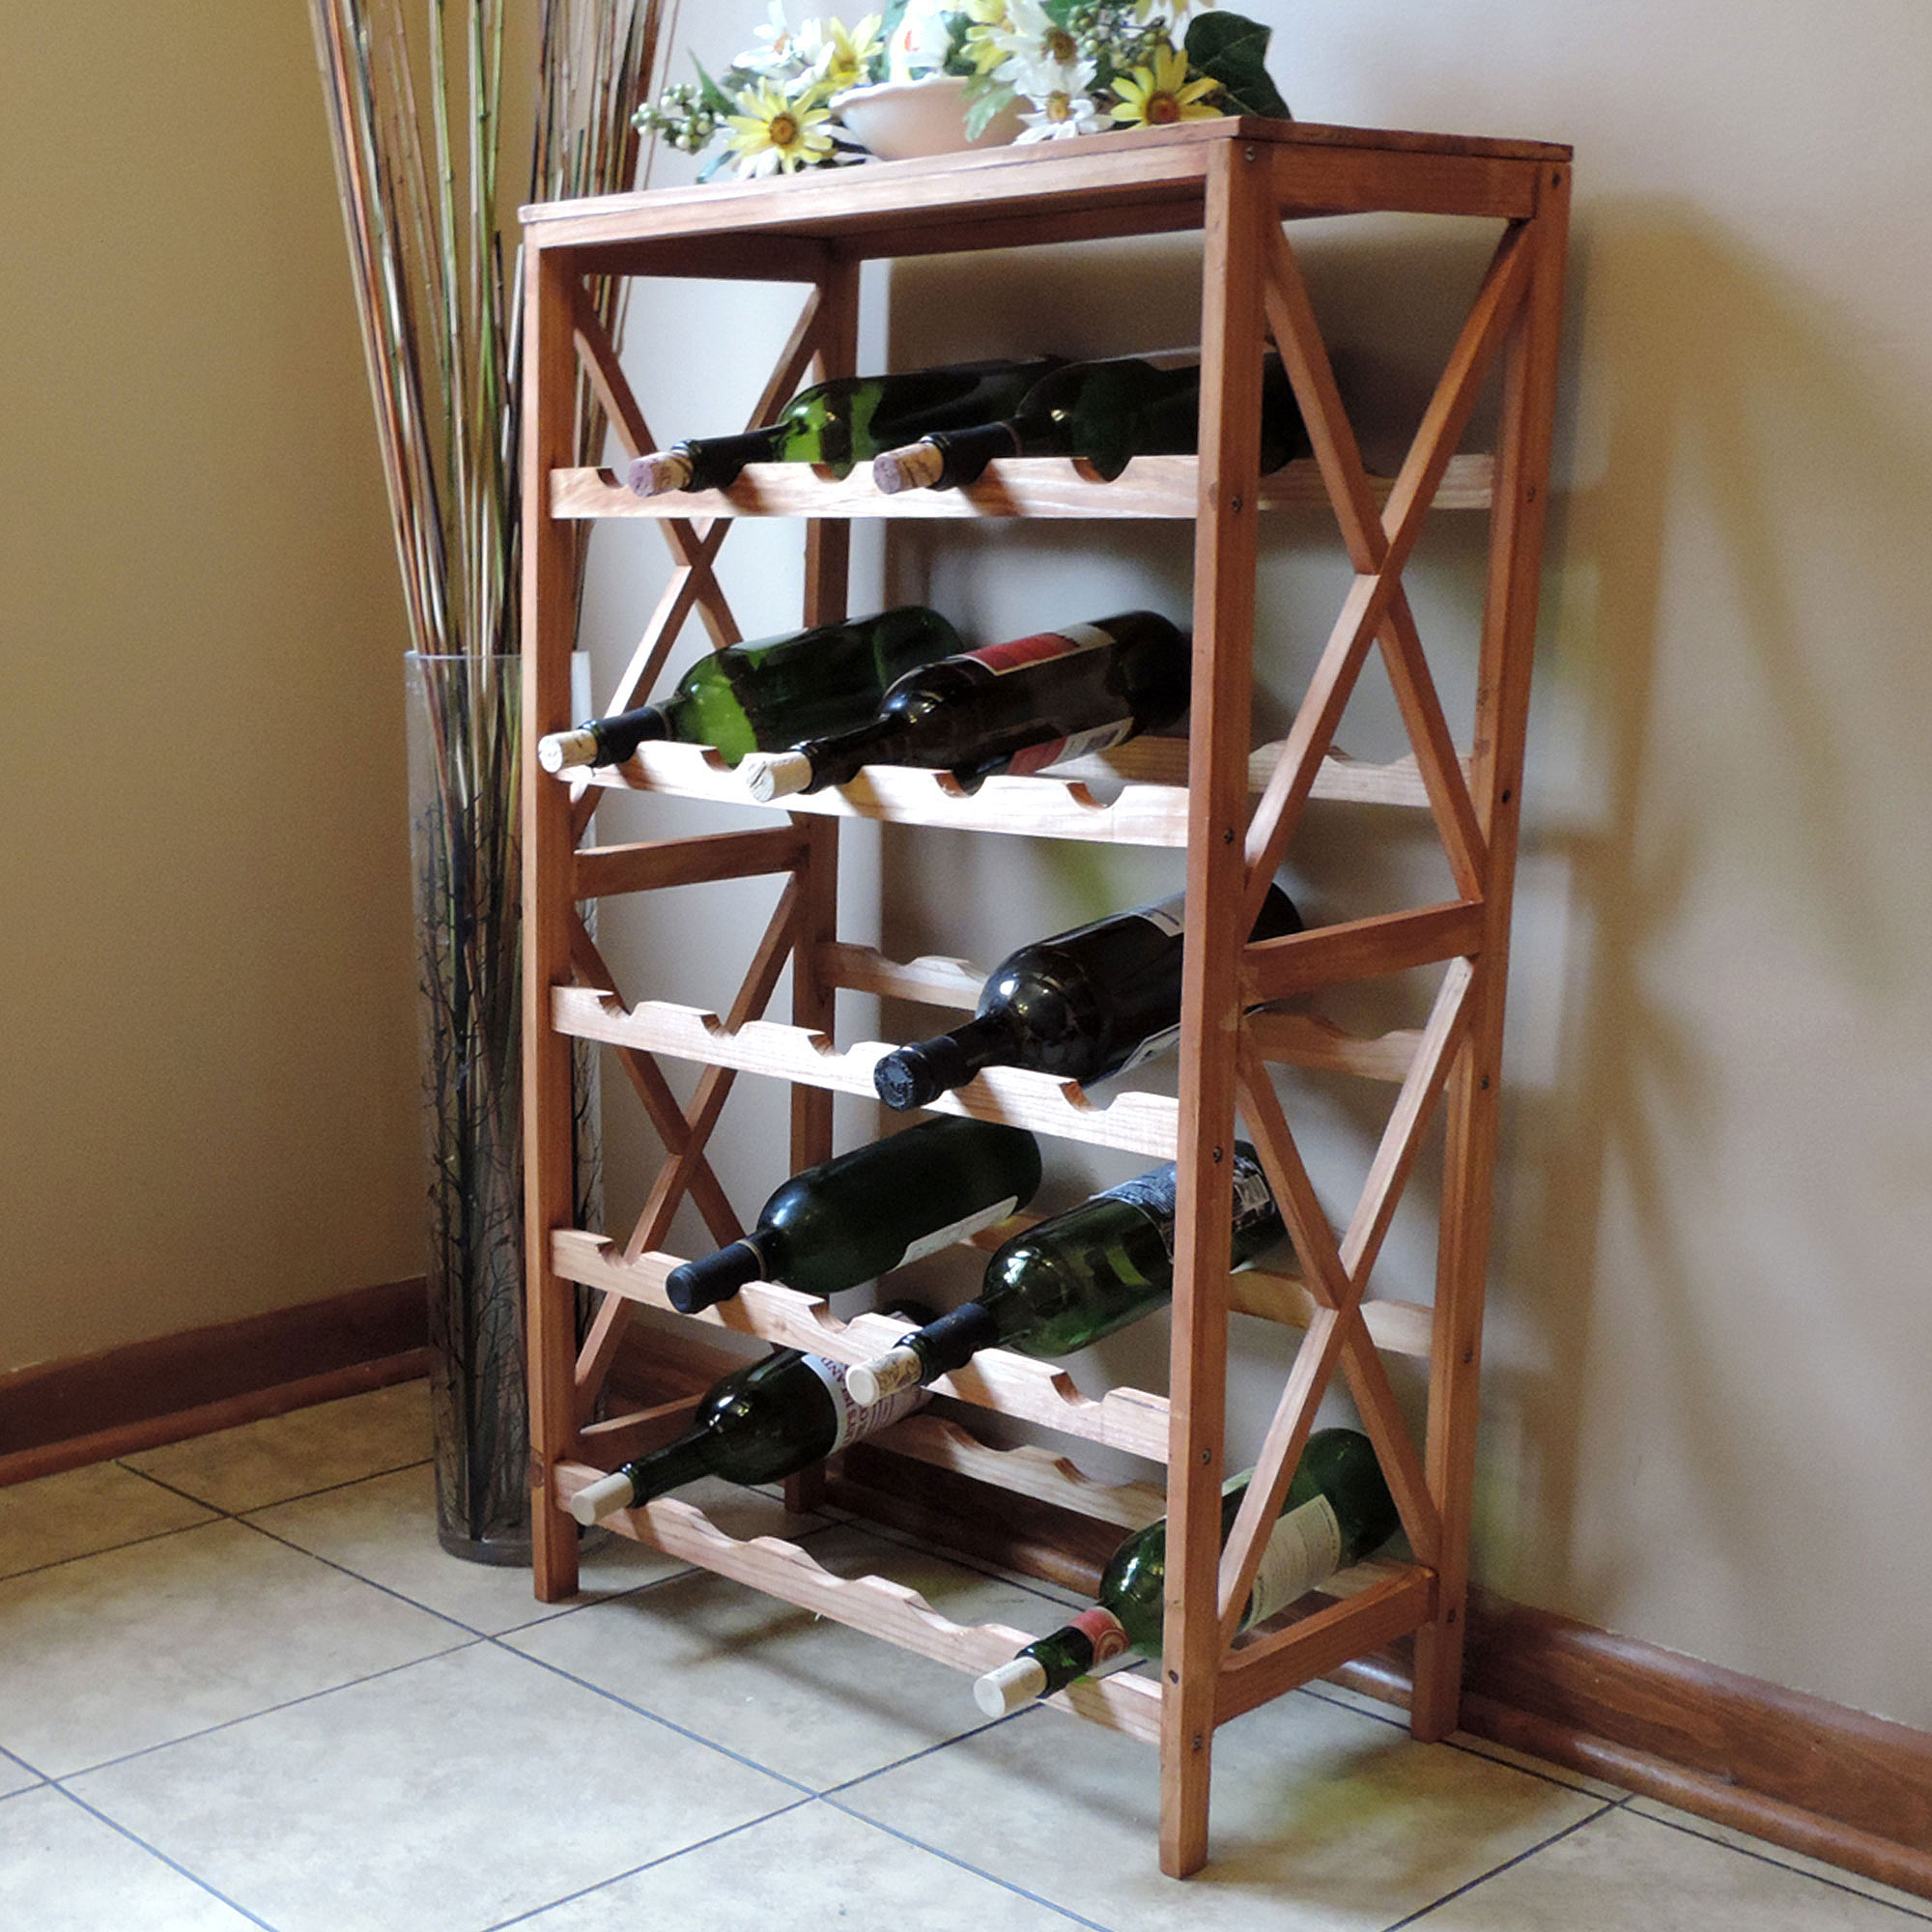 Product Image Rustic Wine Rack Space Saving Free Standing Wine Bottle  Holder For Kitchen, Bar,